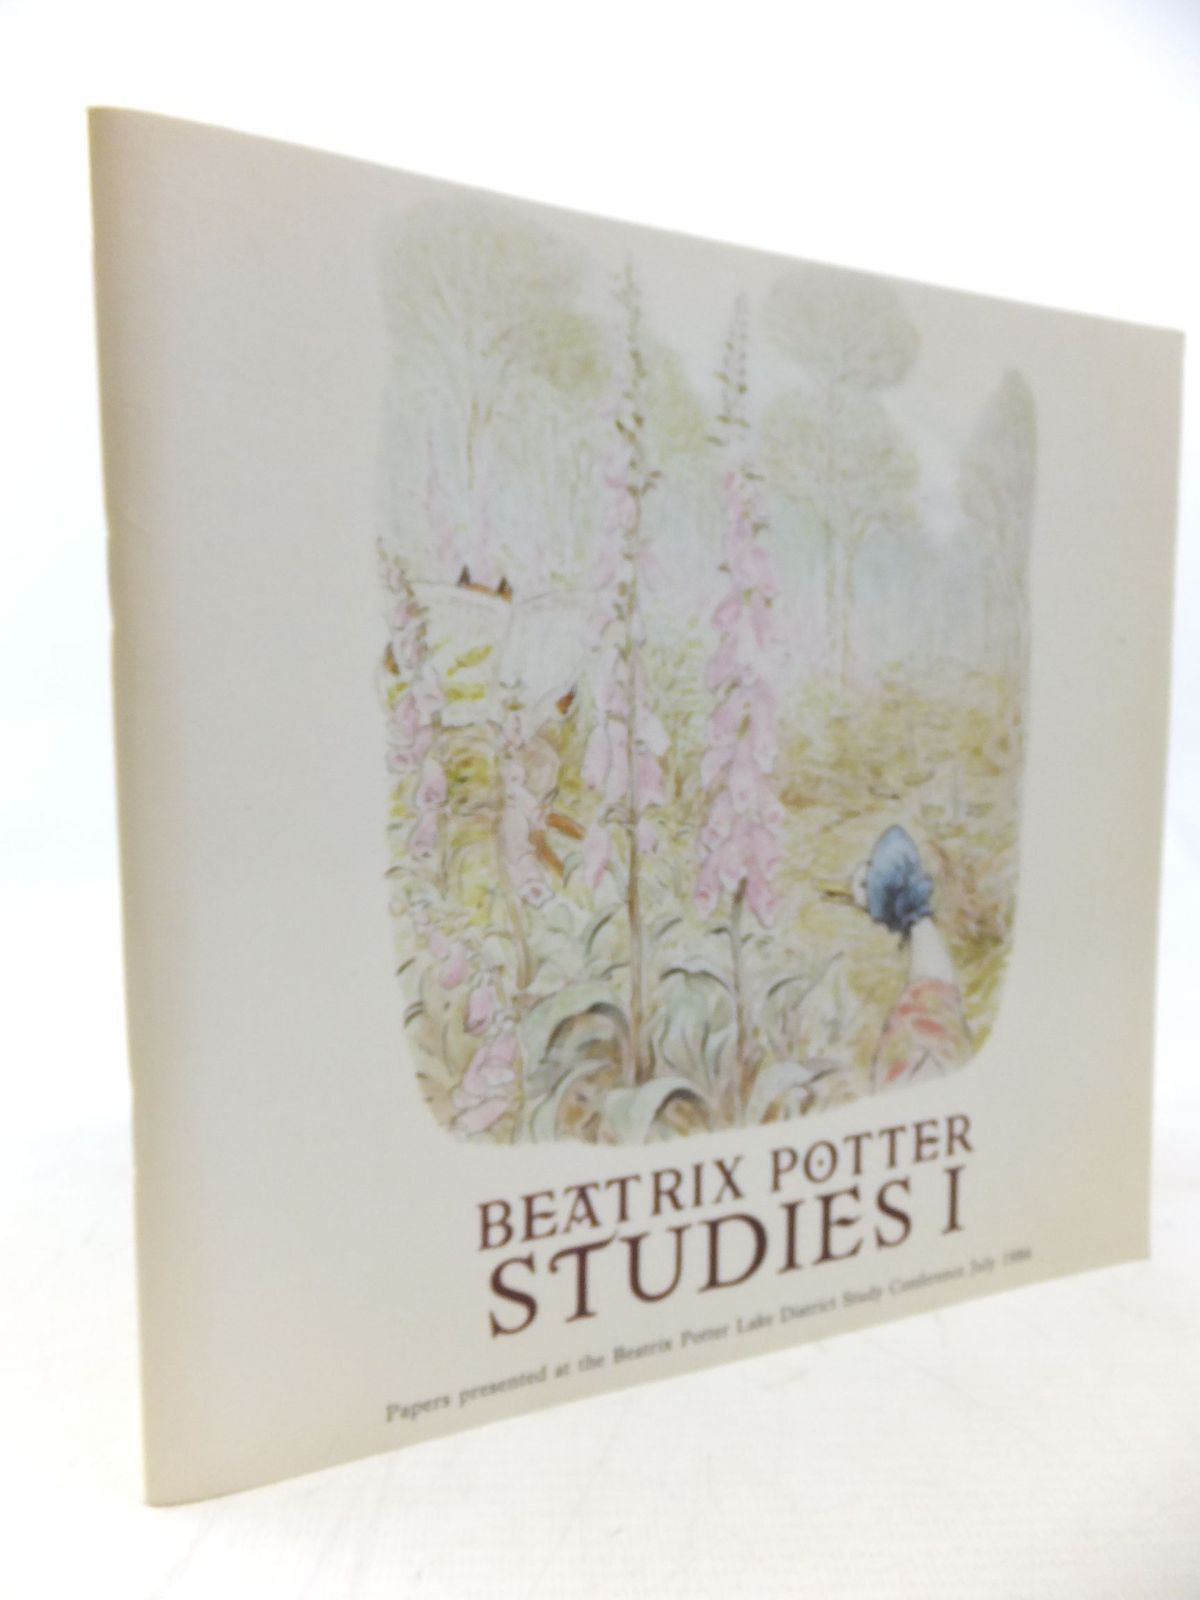 Photo of BEATRIX POTTER STUDIES I written by Pritchard, Jane<br />Riddle, Brian published by The Beatrix Potter Society (STOCK CODE: 2116013)  for sale by Stella & Rose's Books